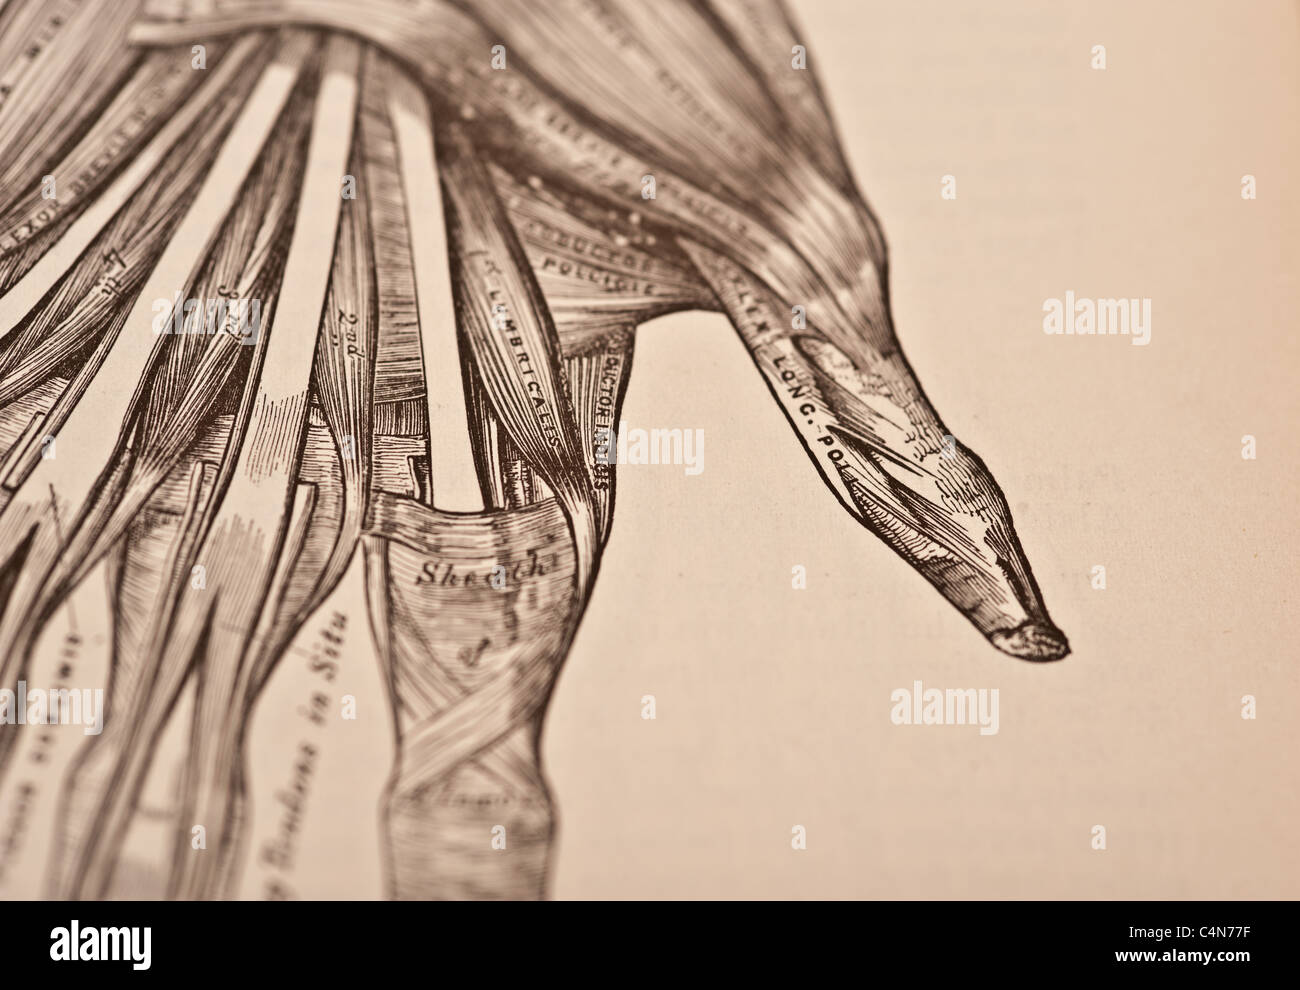 Henry Gray Anatomy Stock Photos & Henry Gray Anatomy Stock Images ...